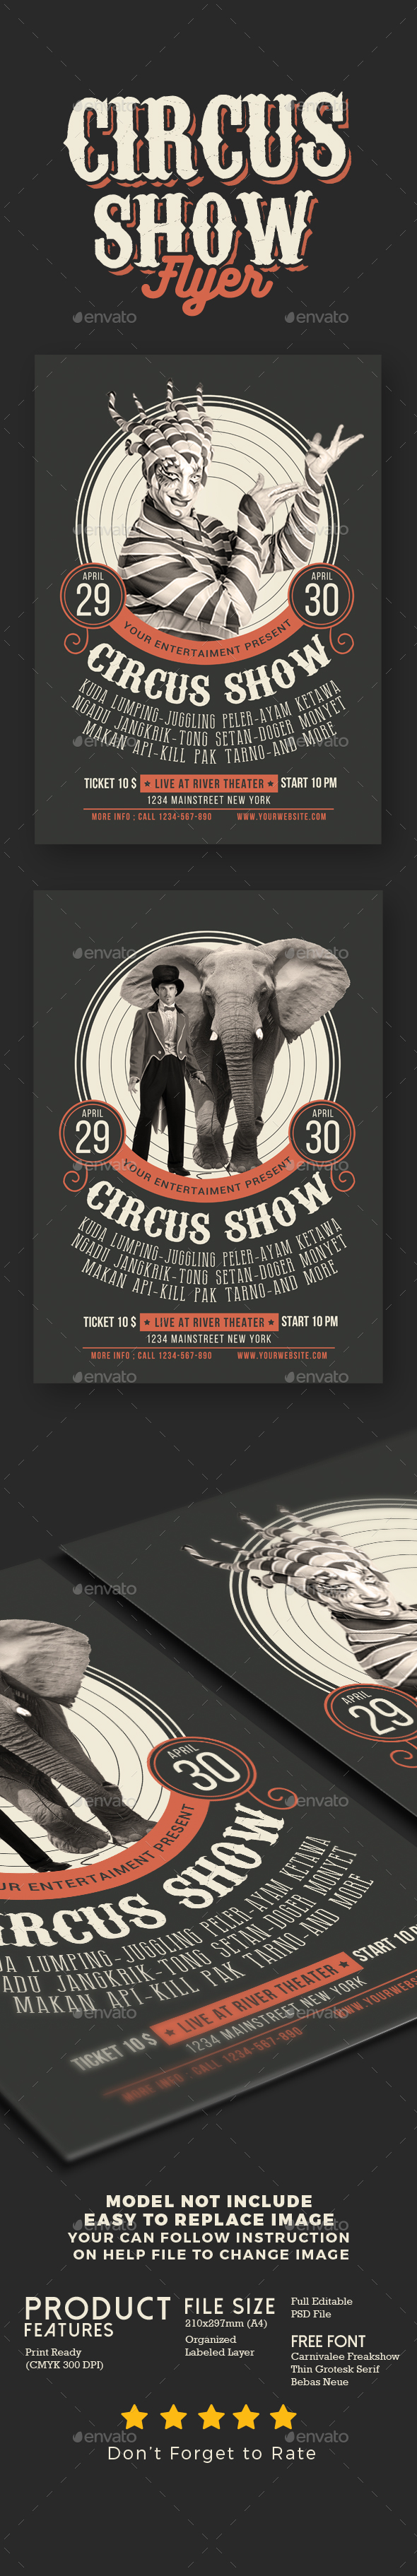 Circus Show Flyer - Events Flyers